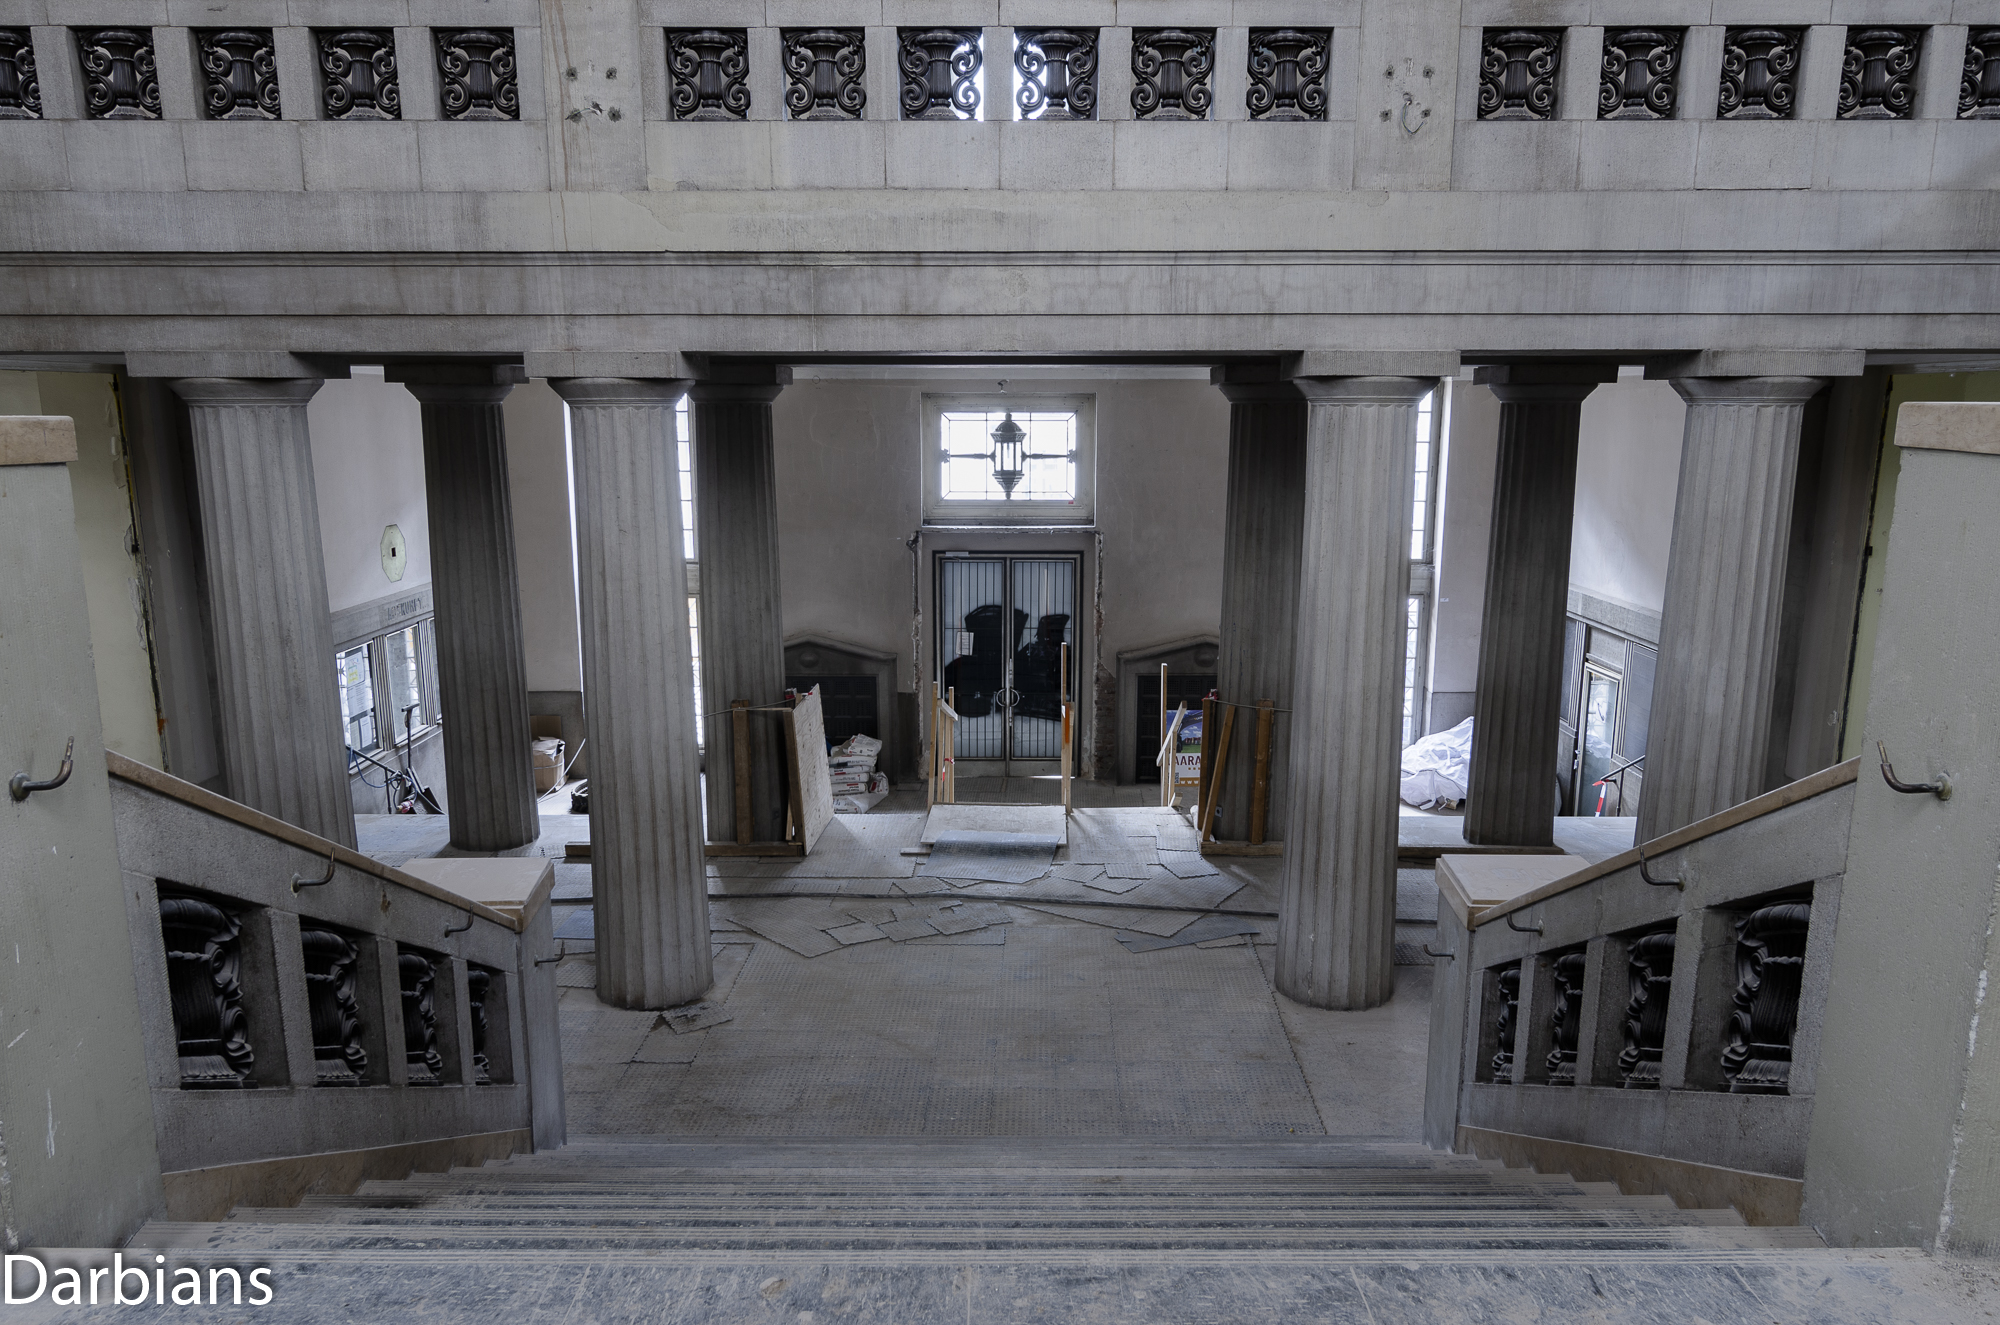 Looking down to the entrance from the middle of the main staircase.